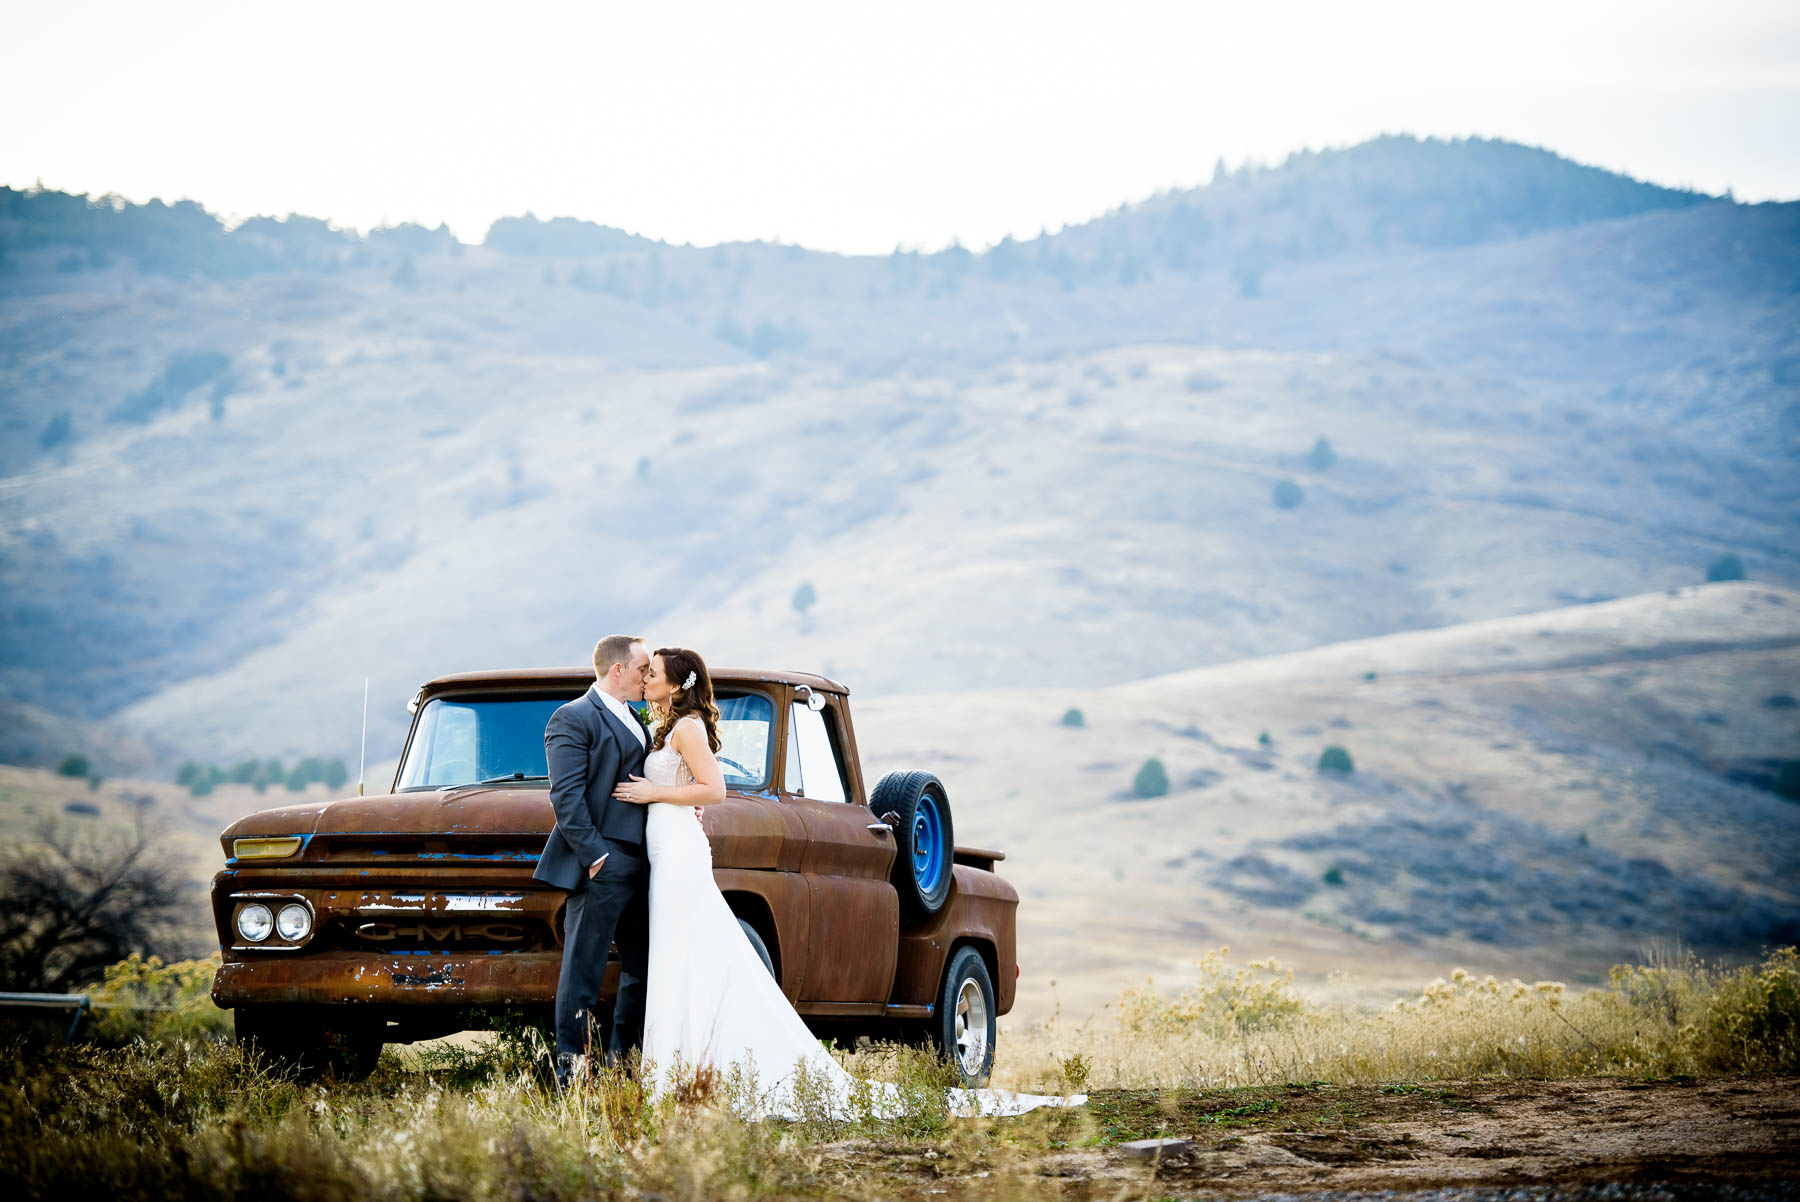 Bride & groom kiss in front of the mountains during their wedding at the Manor House in Littleton, Colorado.